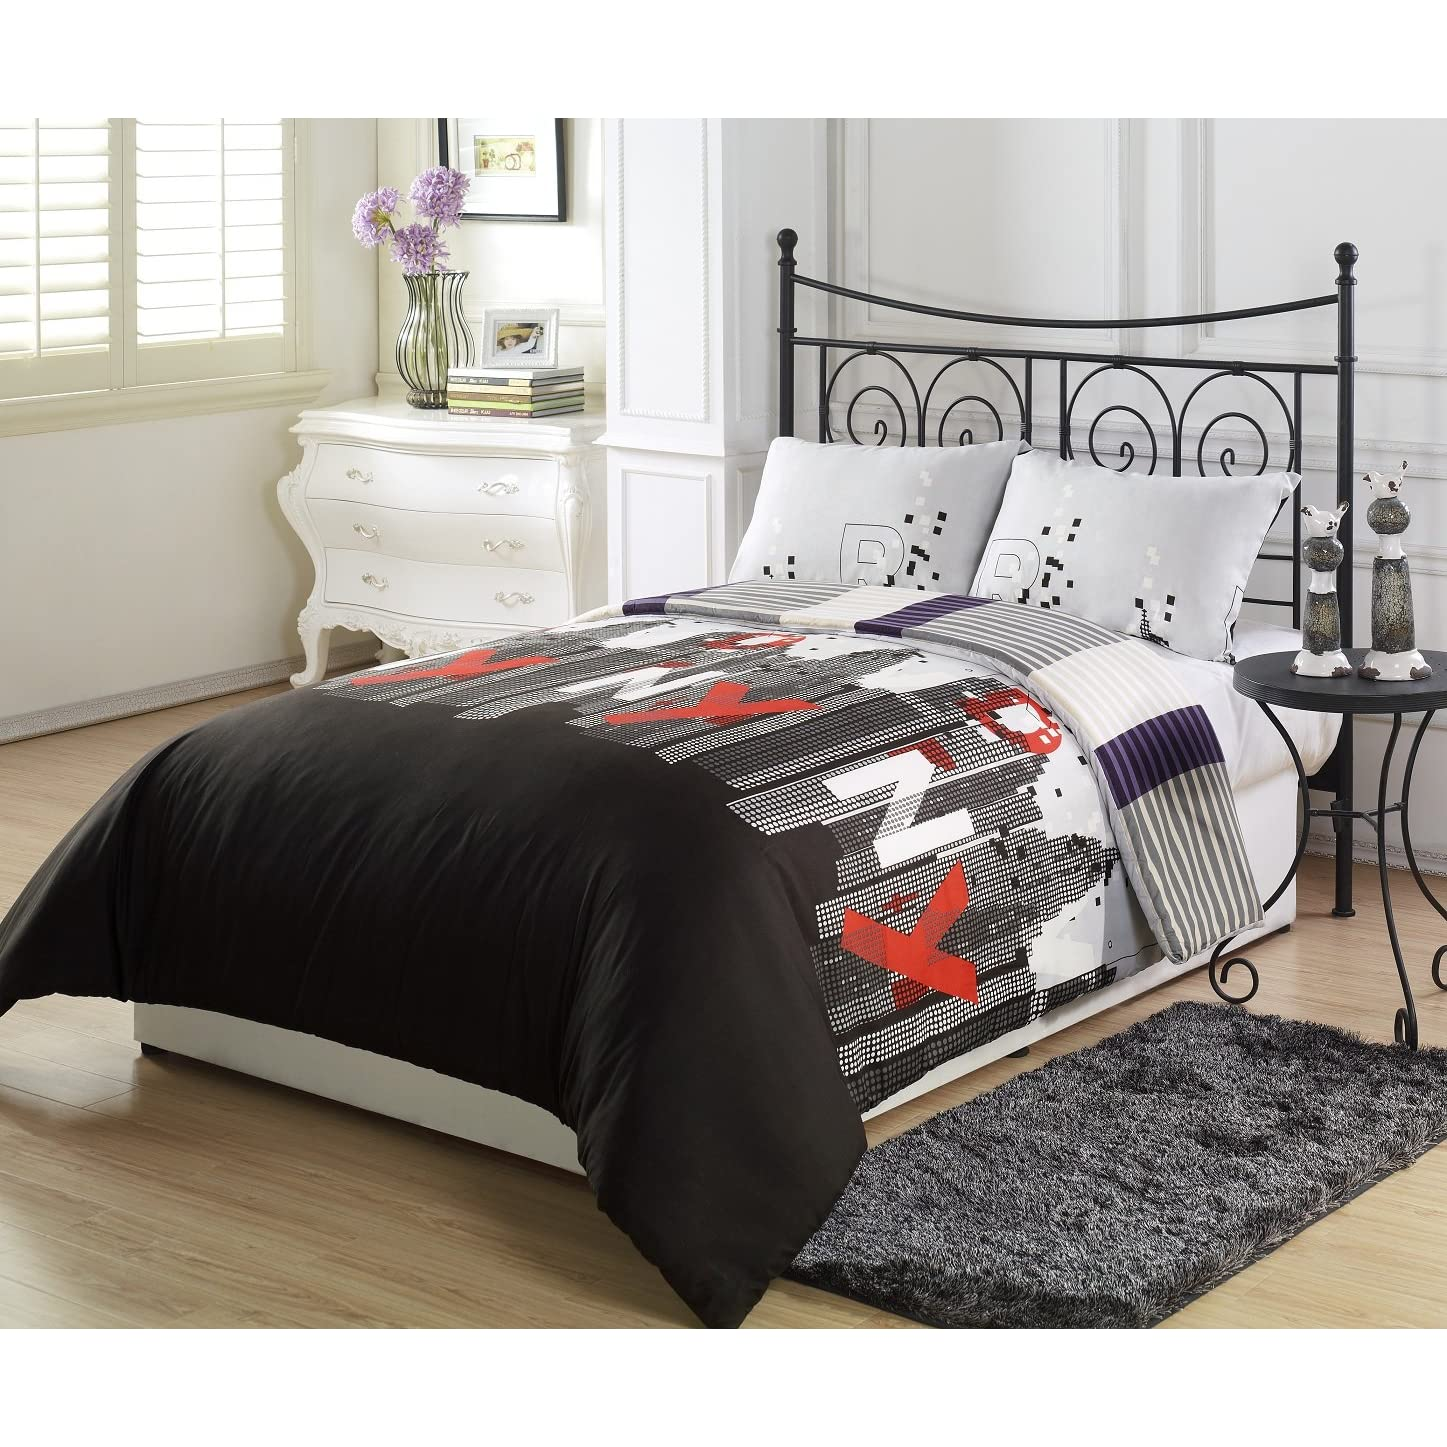 Bedding new york city images frompo 1 for City themed bedroom accessories